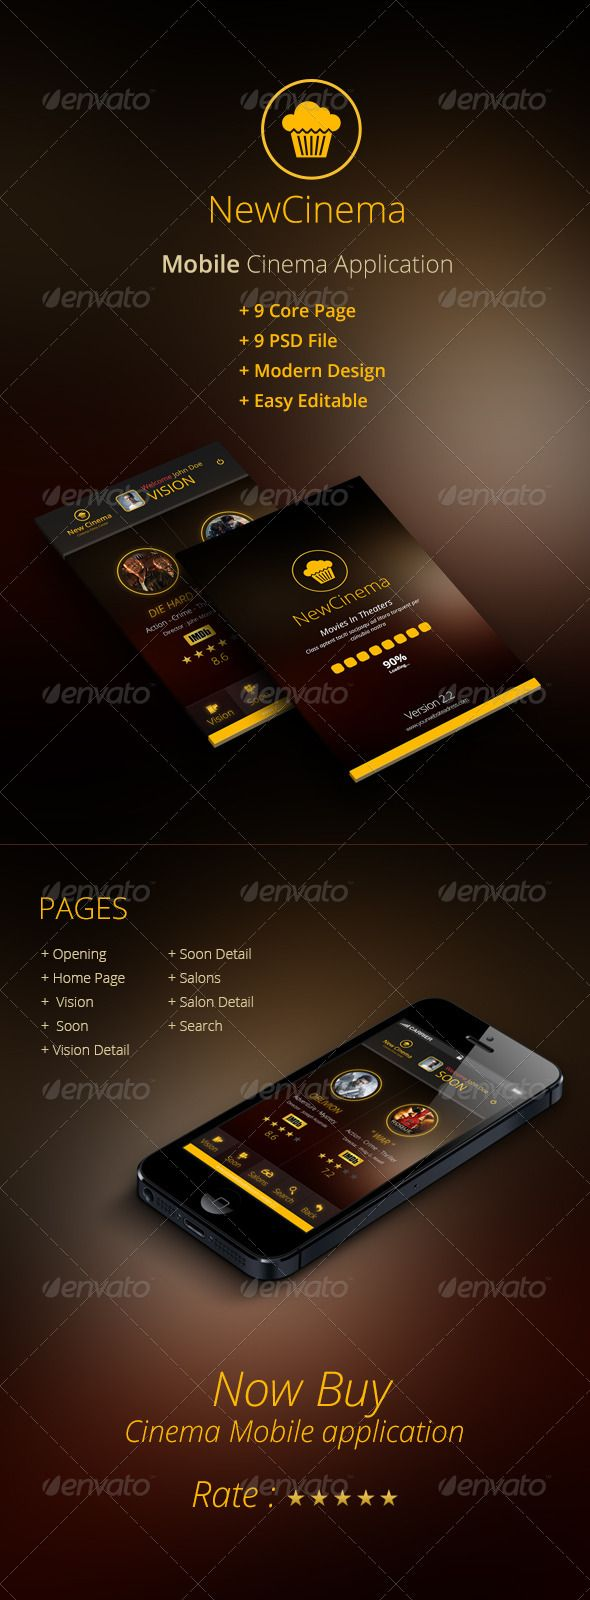 NewCinema #GraphicRiver Project Highlights + Mobile Cinema Application UX + 9 Core Page + 9 PSD File + Easy Editable + Modern Design Fonts Open Sans Created: 2November13 GraphicsFilesIncluded: PhotoshopPSD #LayeredPNG #JPGImage HighResolution: Yes Layered: Yes MinimumAdobeCSVersion: CS PixelDimensions: 640x960 Tags: cinema #film #mobilpsd #mobileui/ux #movies